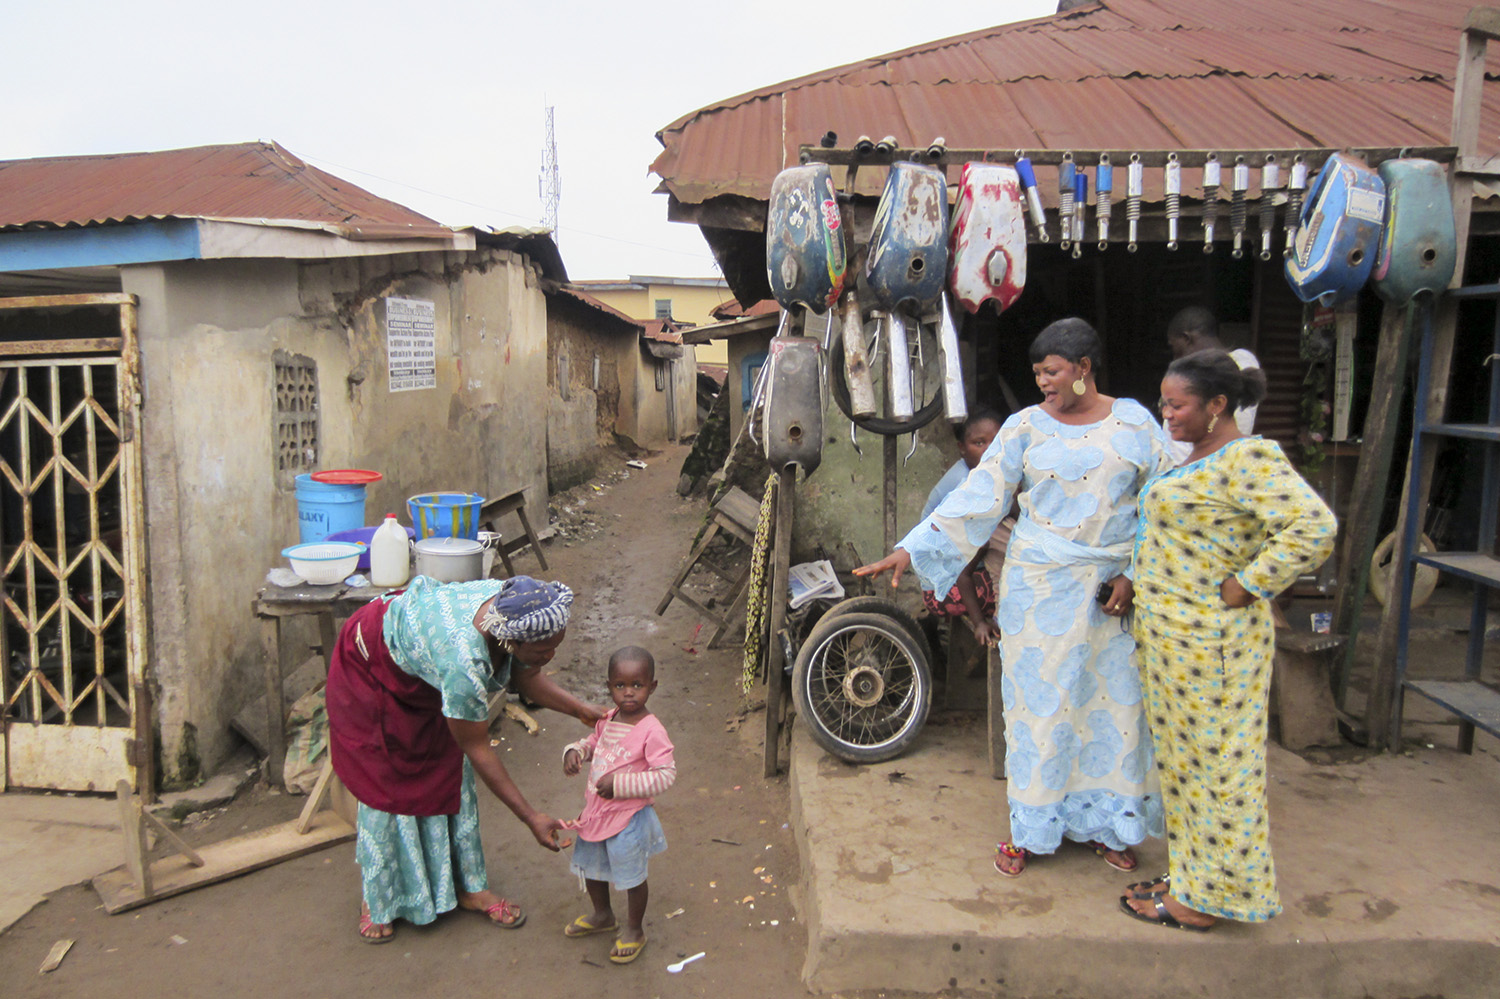 Matriarchs and a small child in Akure, Nigeria. Shutterstock.